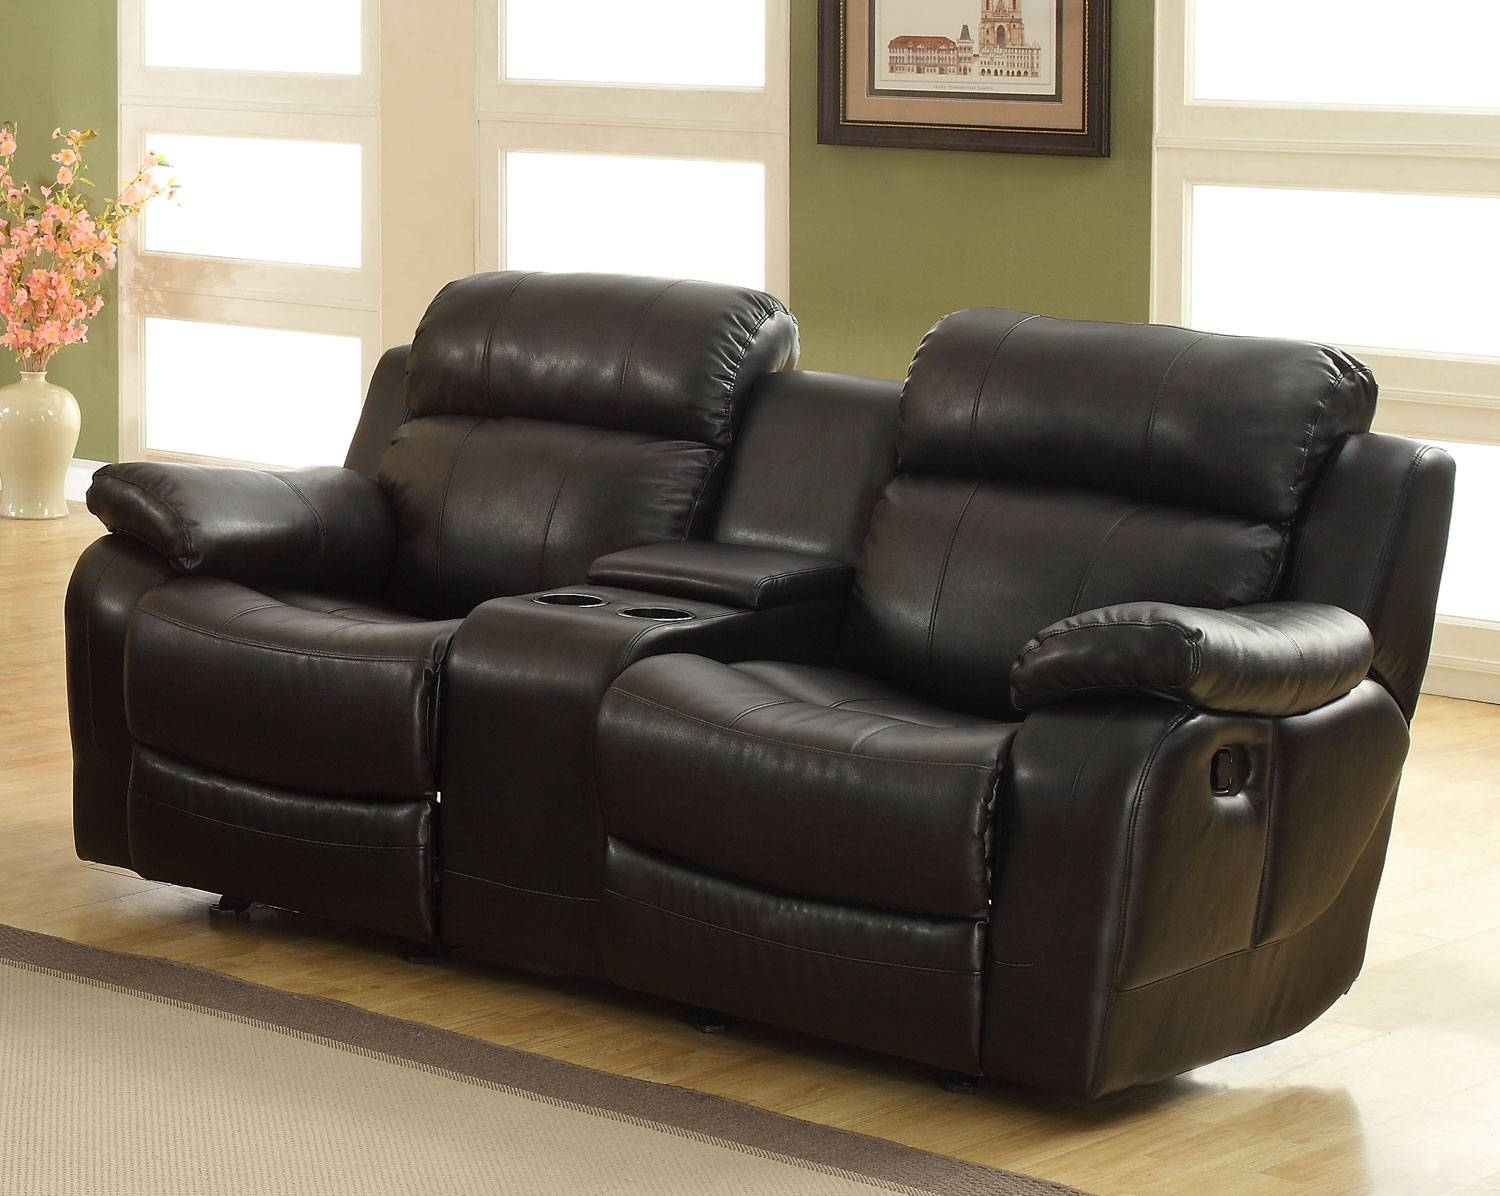 Furniture: Enjoy Your Time With Cozy Rocking Recliner Loveseat with 2 Seat Recliner Sofas (Image 11 of 30)